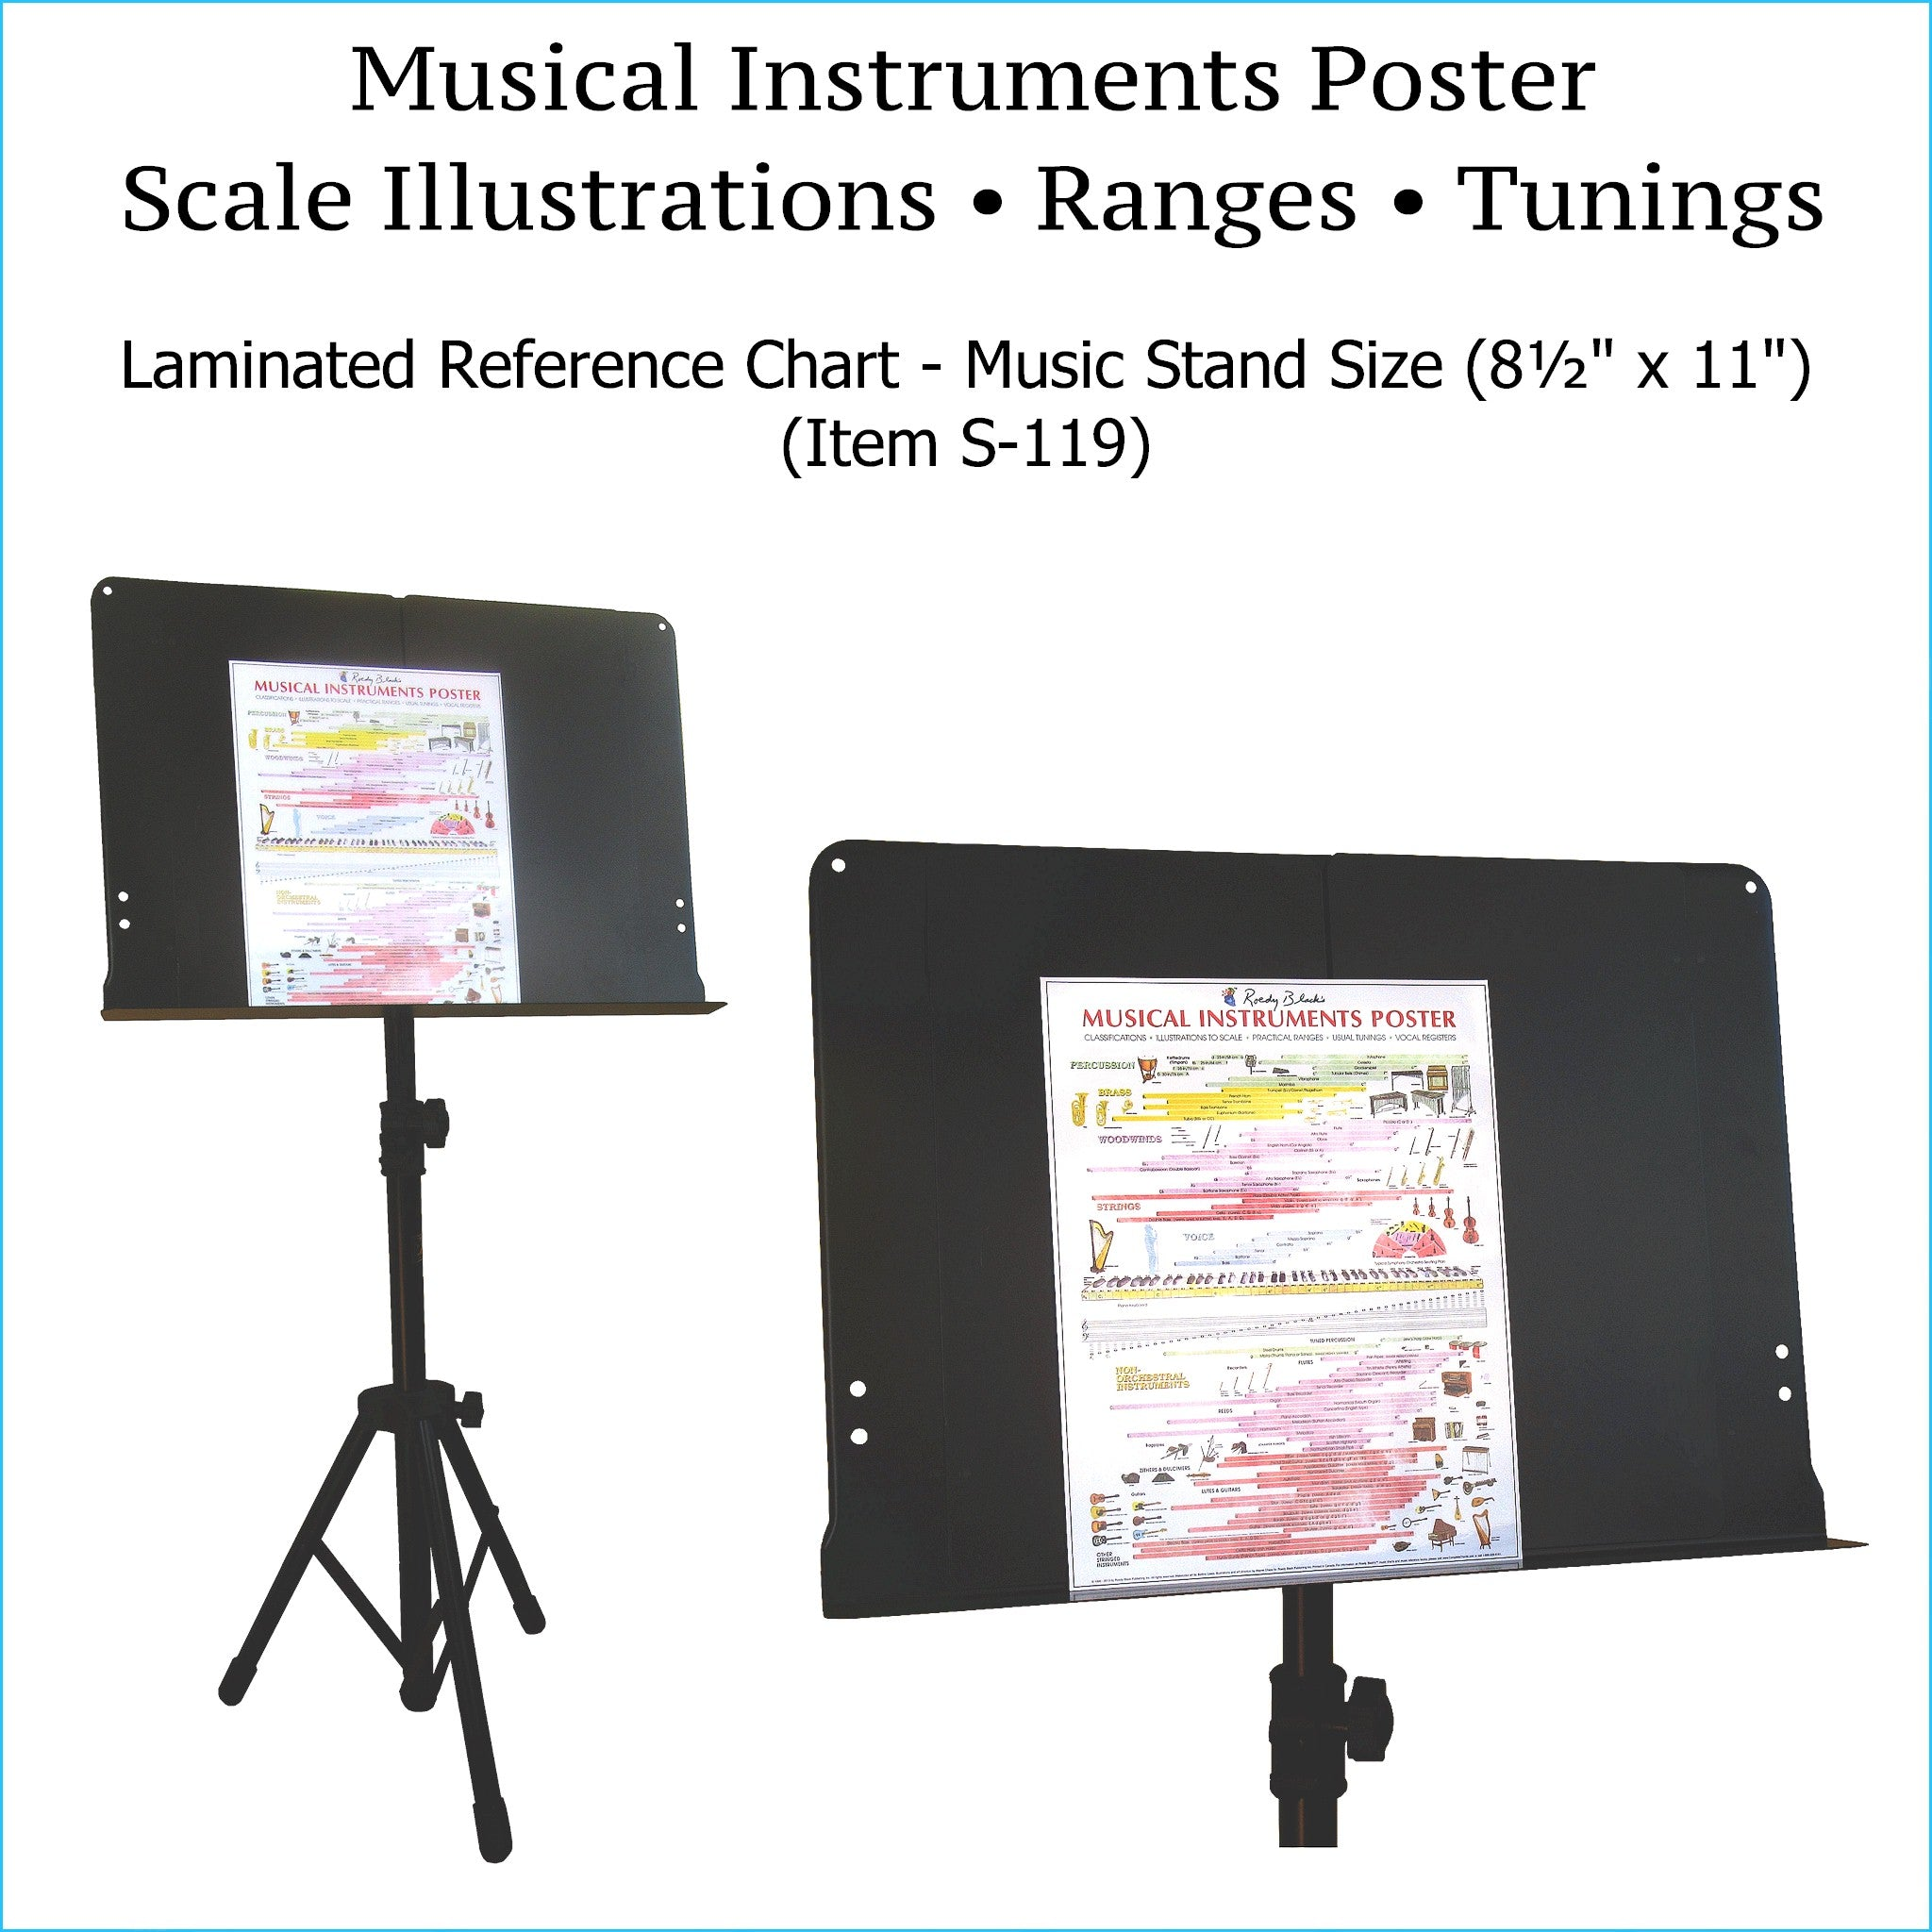 Musical instruments poster, music stand size.